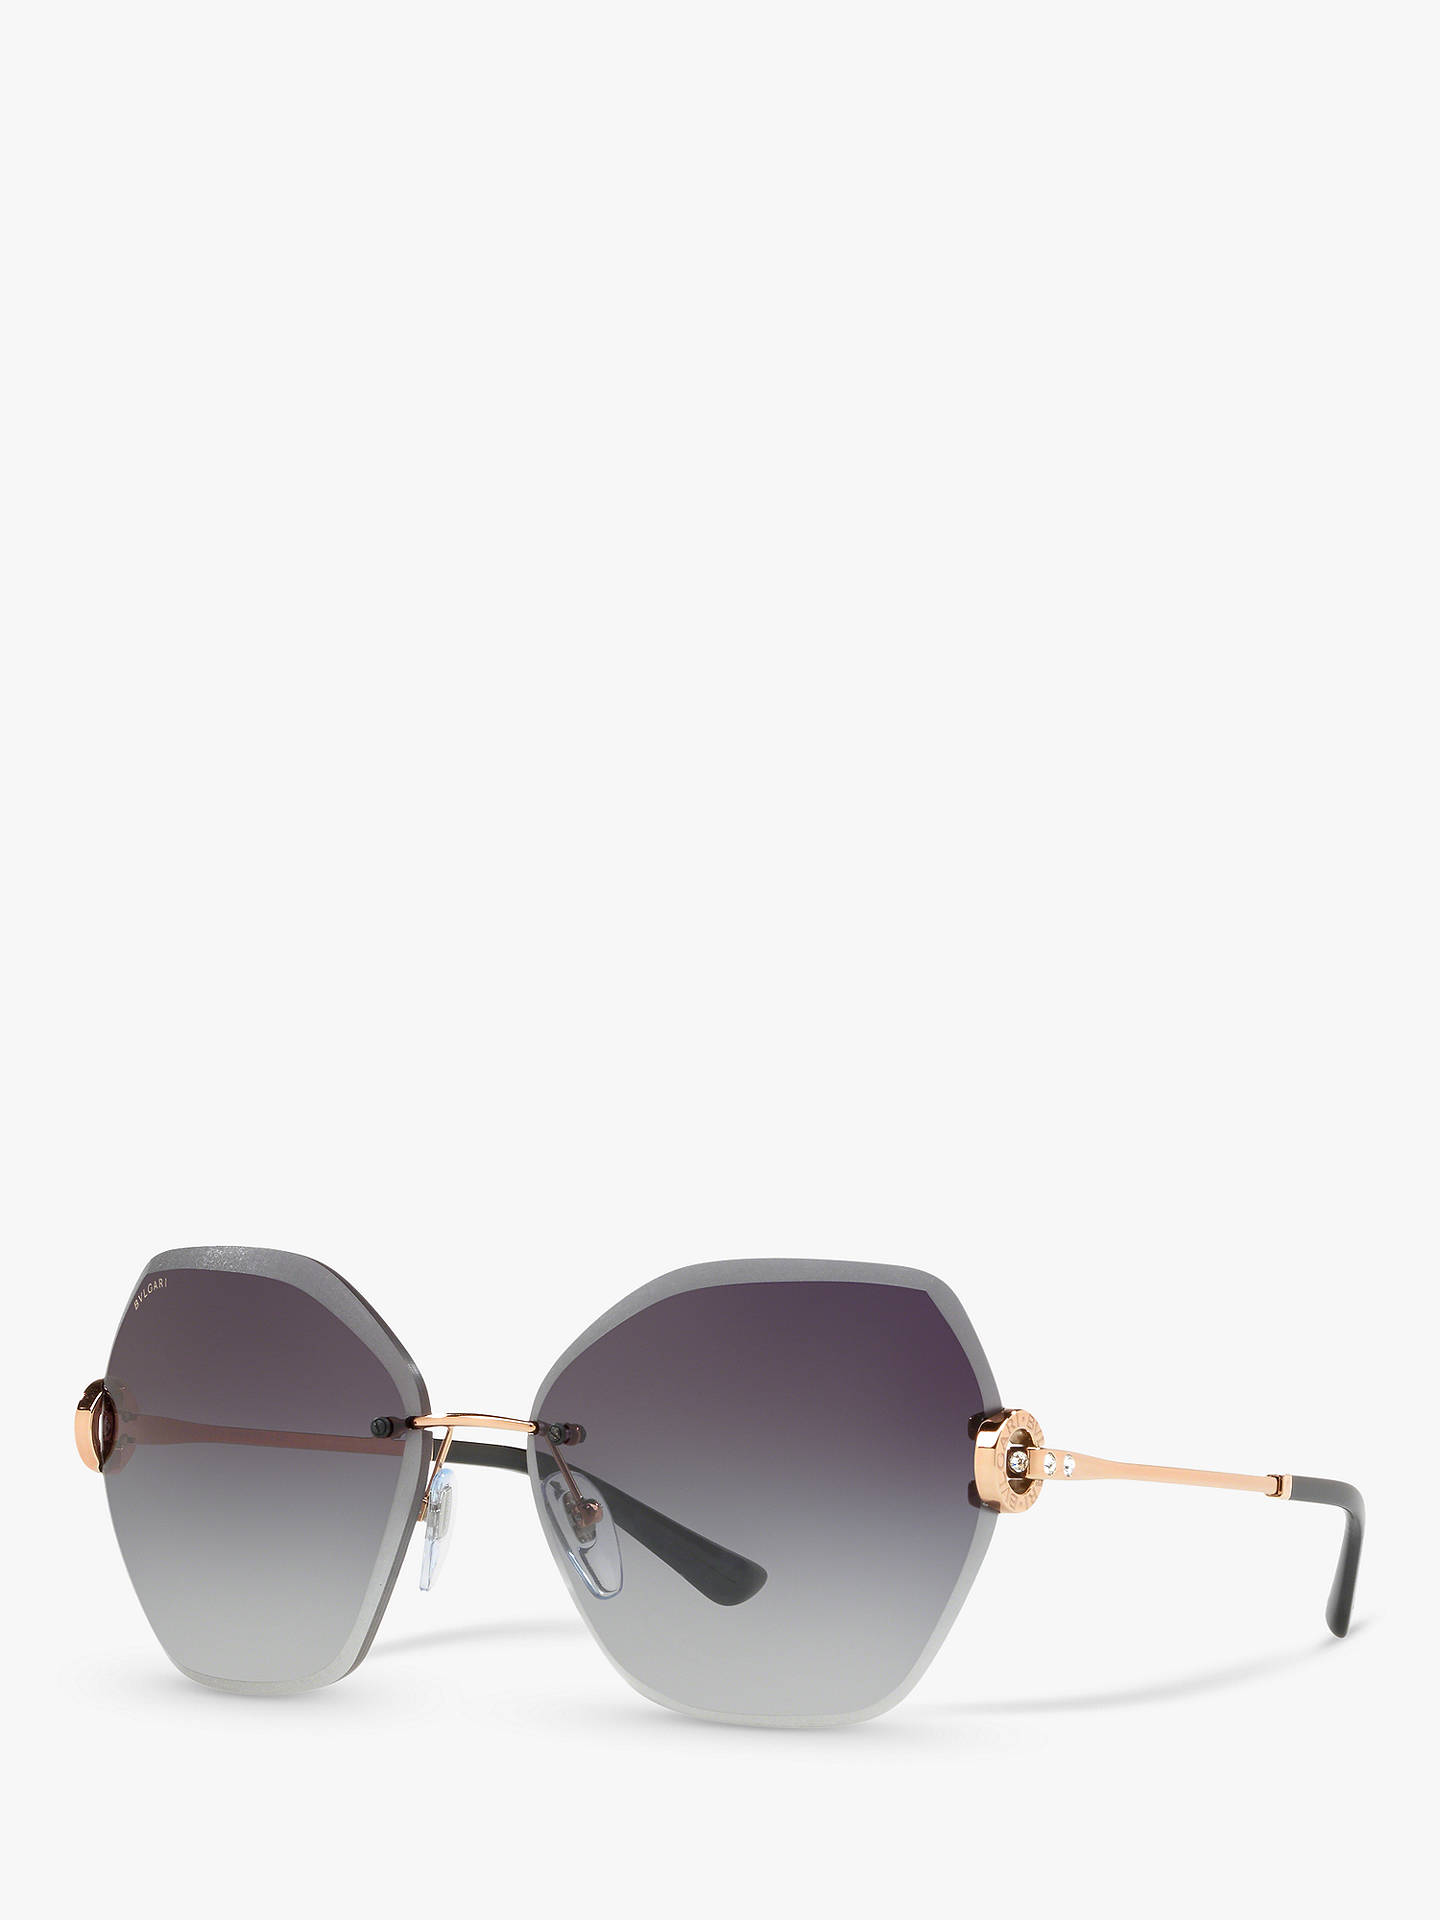 BuyBVLGARI BV6105B62 Women's Hexagonal Sunglasses, Grey Online at johnlewis.com